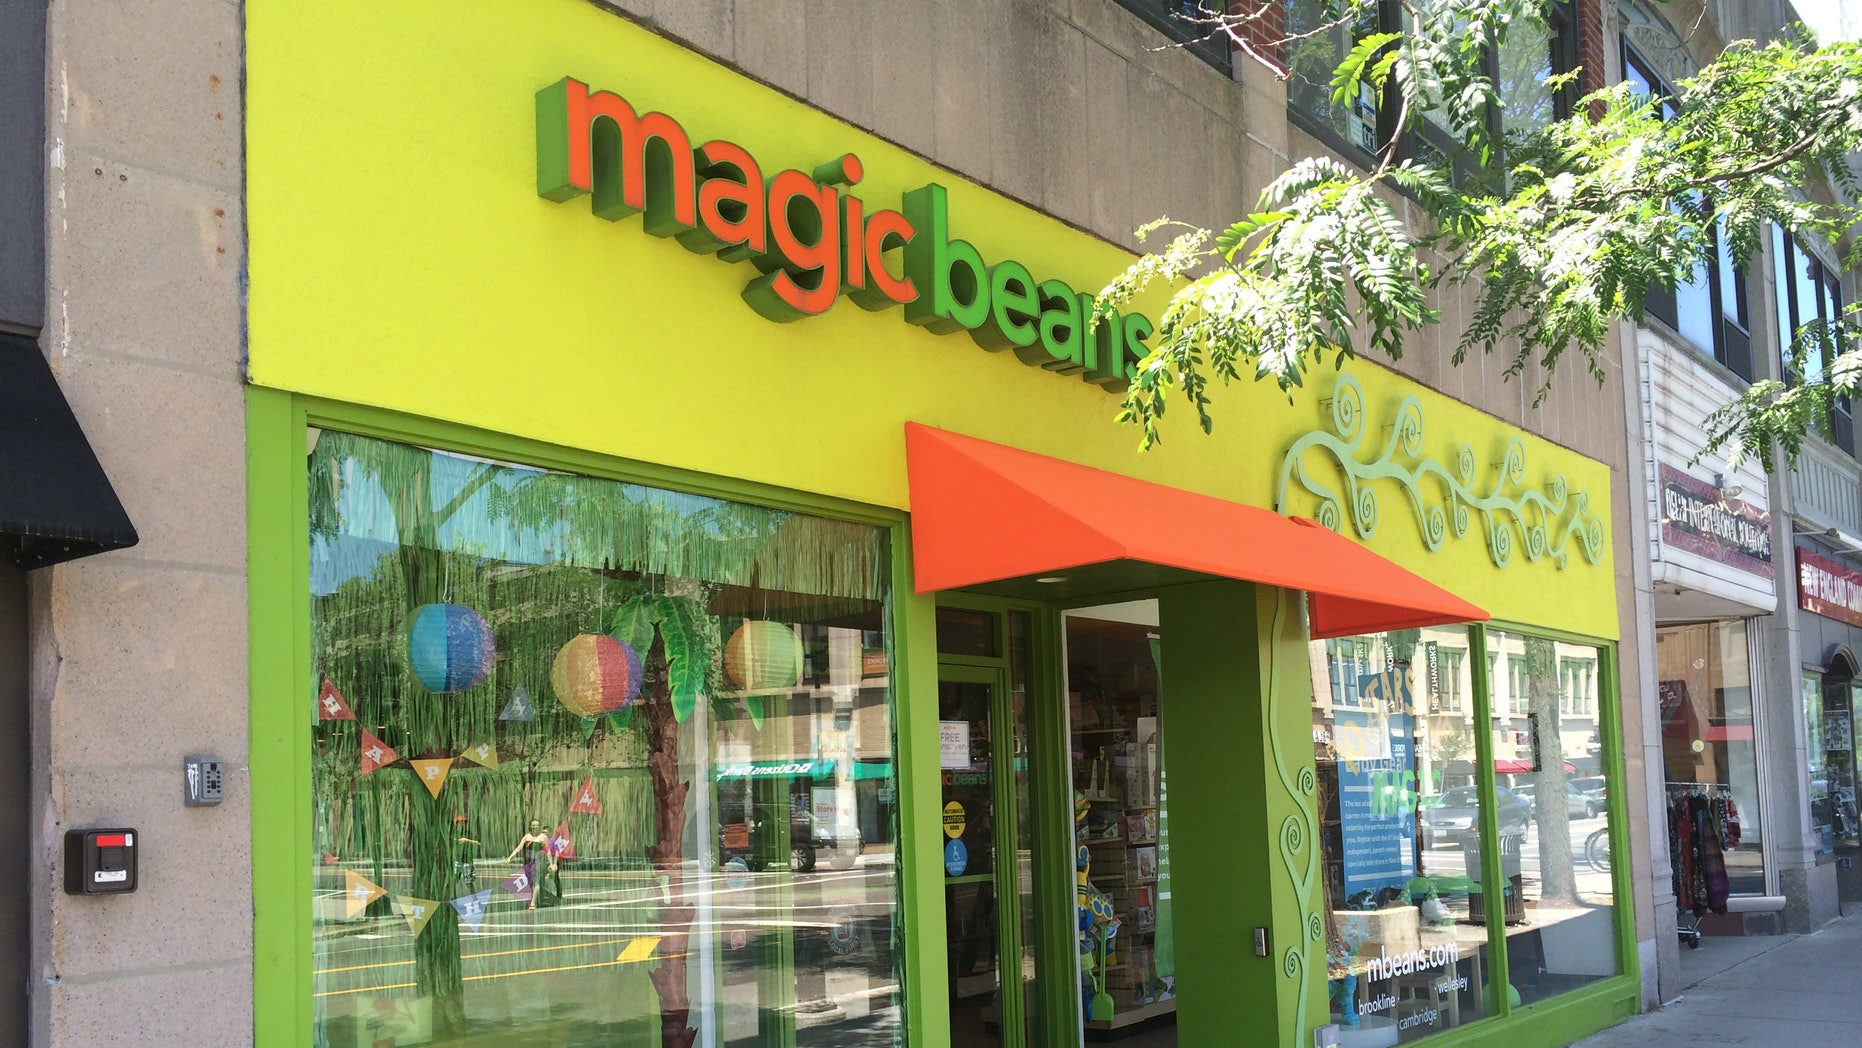 A Magic Beans store in Brookline, Mass. (Courtesy of the author)